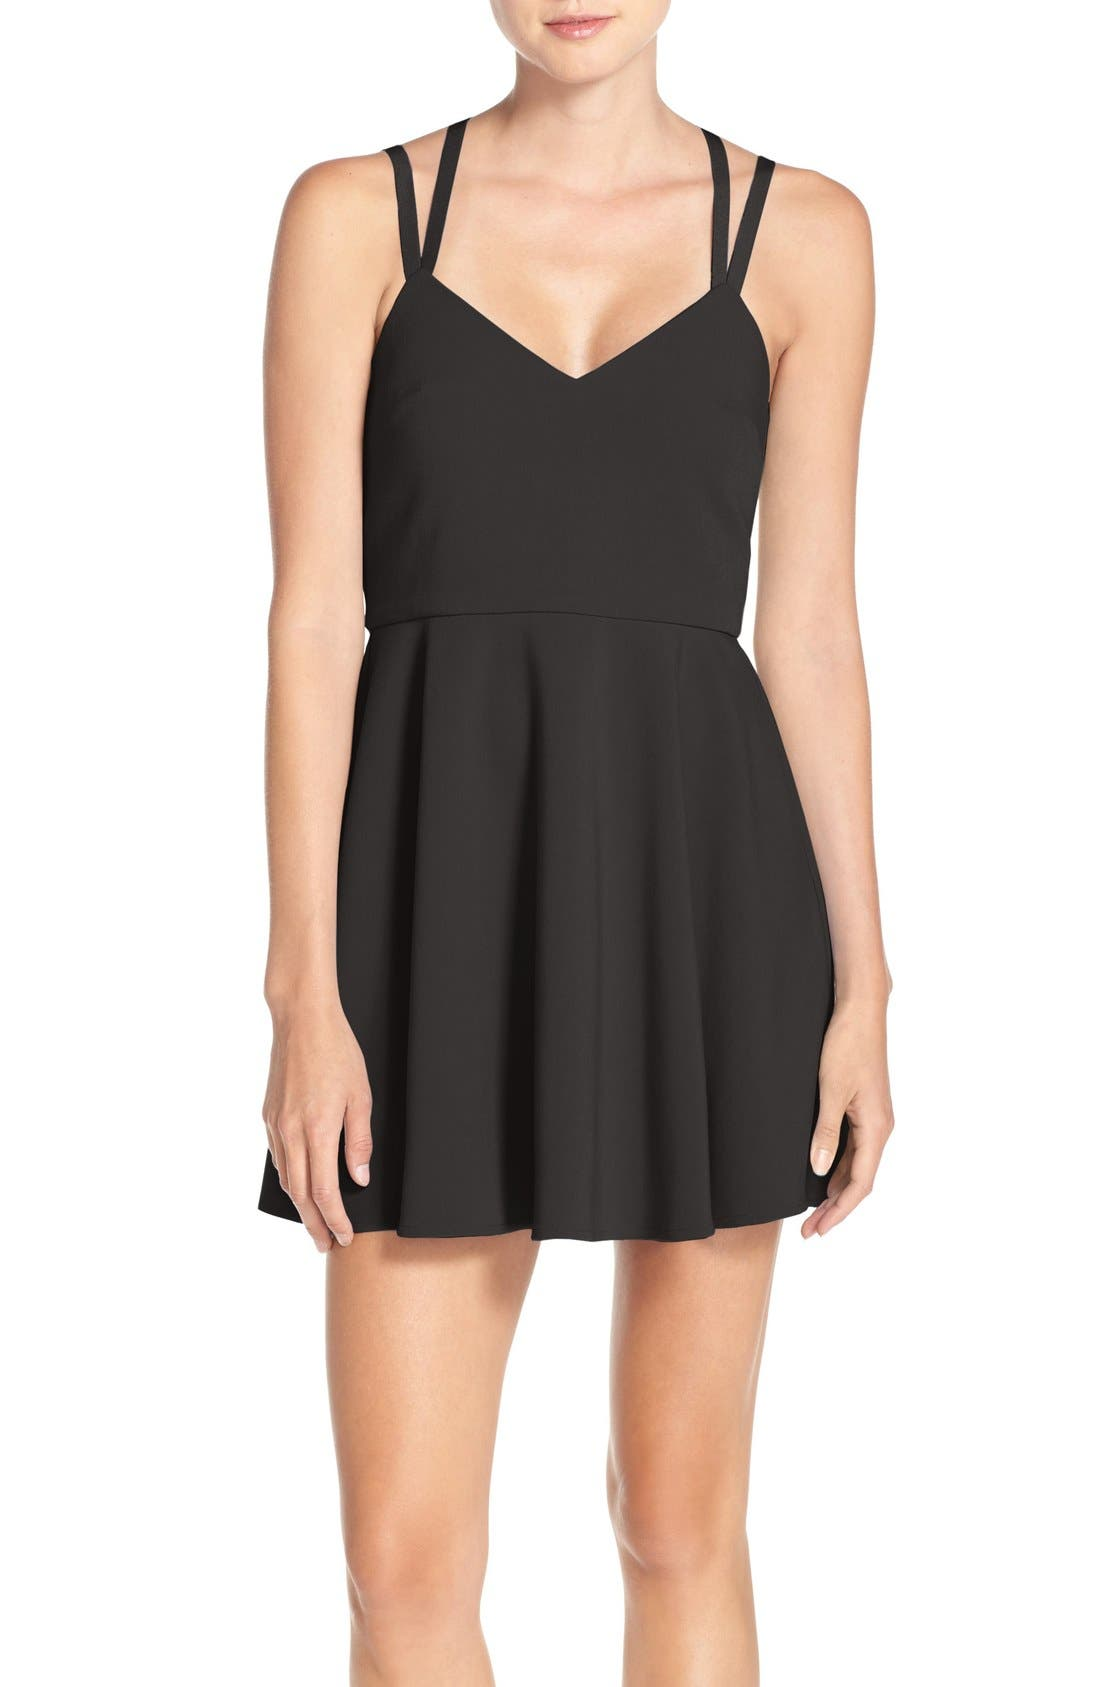 Alternate Image 1 Selected - French Connection Whisper Strappy Skater Dress